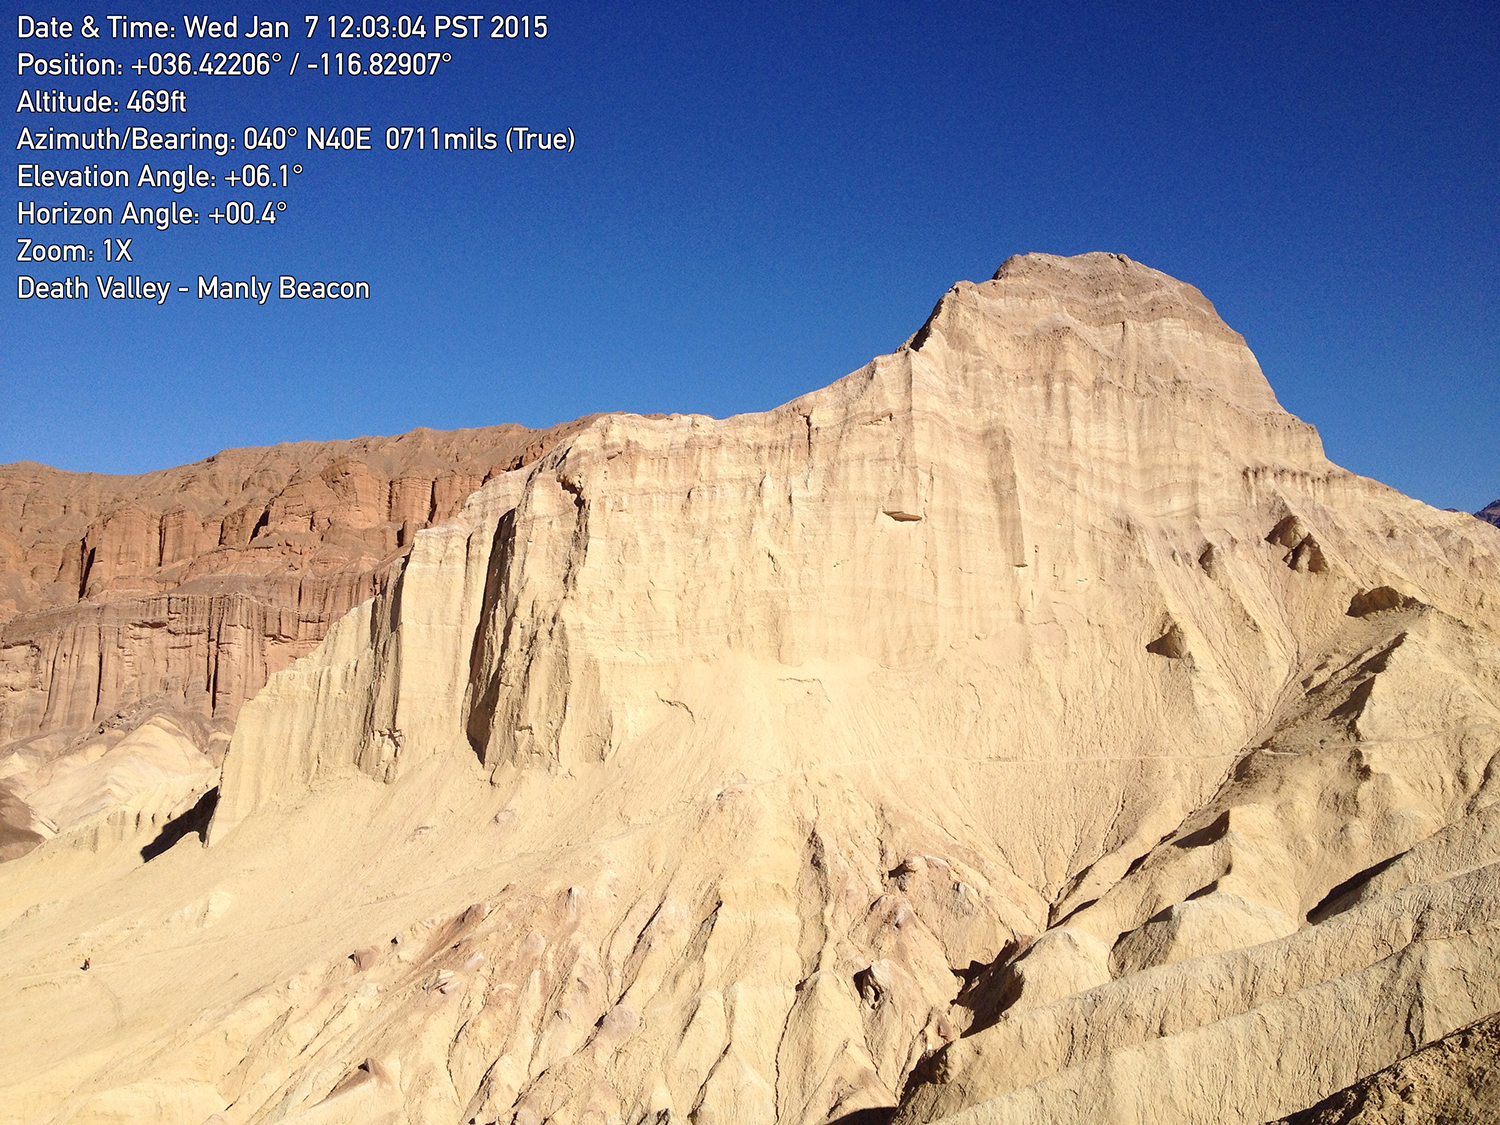 Death Valley: Manly Beacon